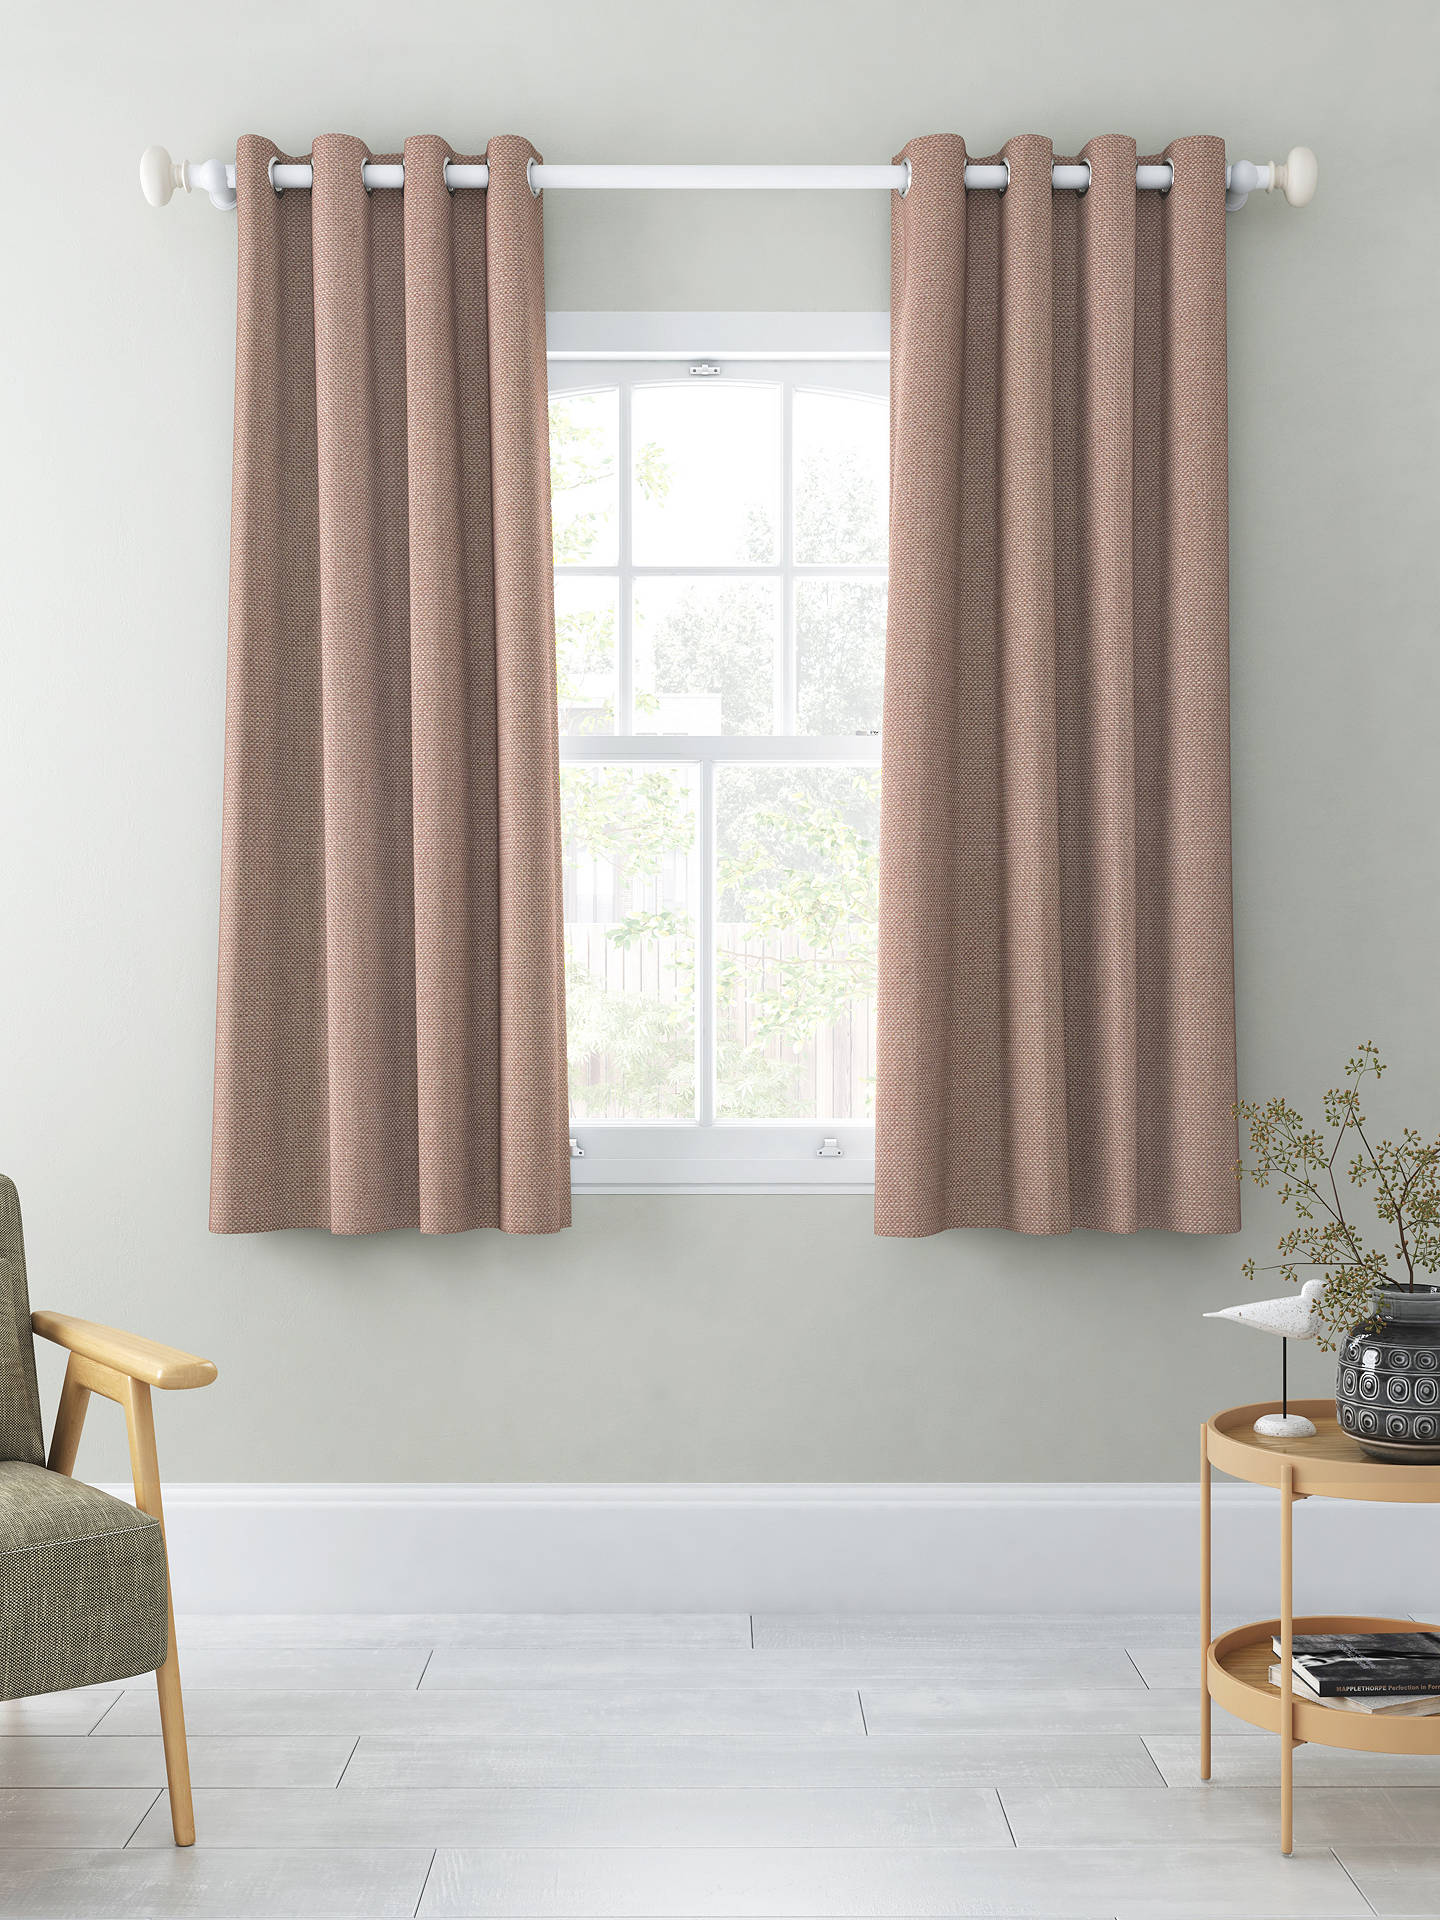 Buy John Lewis & Partners Basket Weave Pair Blackout Lined Eyelet Curtains, Mocha, W167 x Drop 137cm Online at johnlewis.com